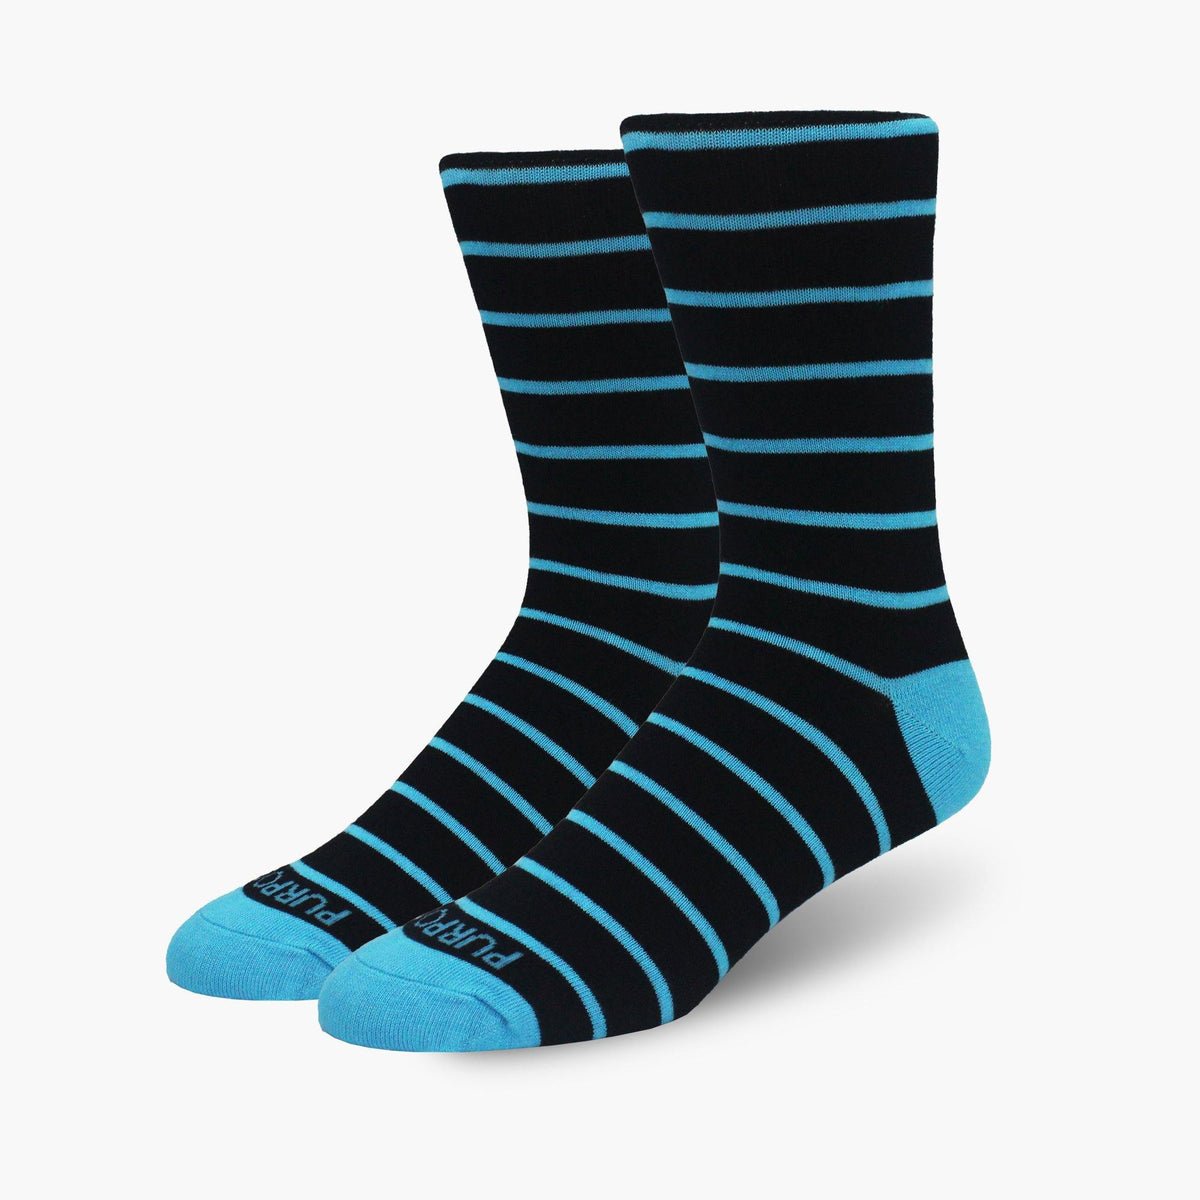 Blue Striped Bamboo Crew Length Swanky Socks - SwankySocks